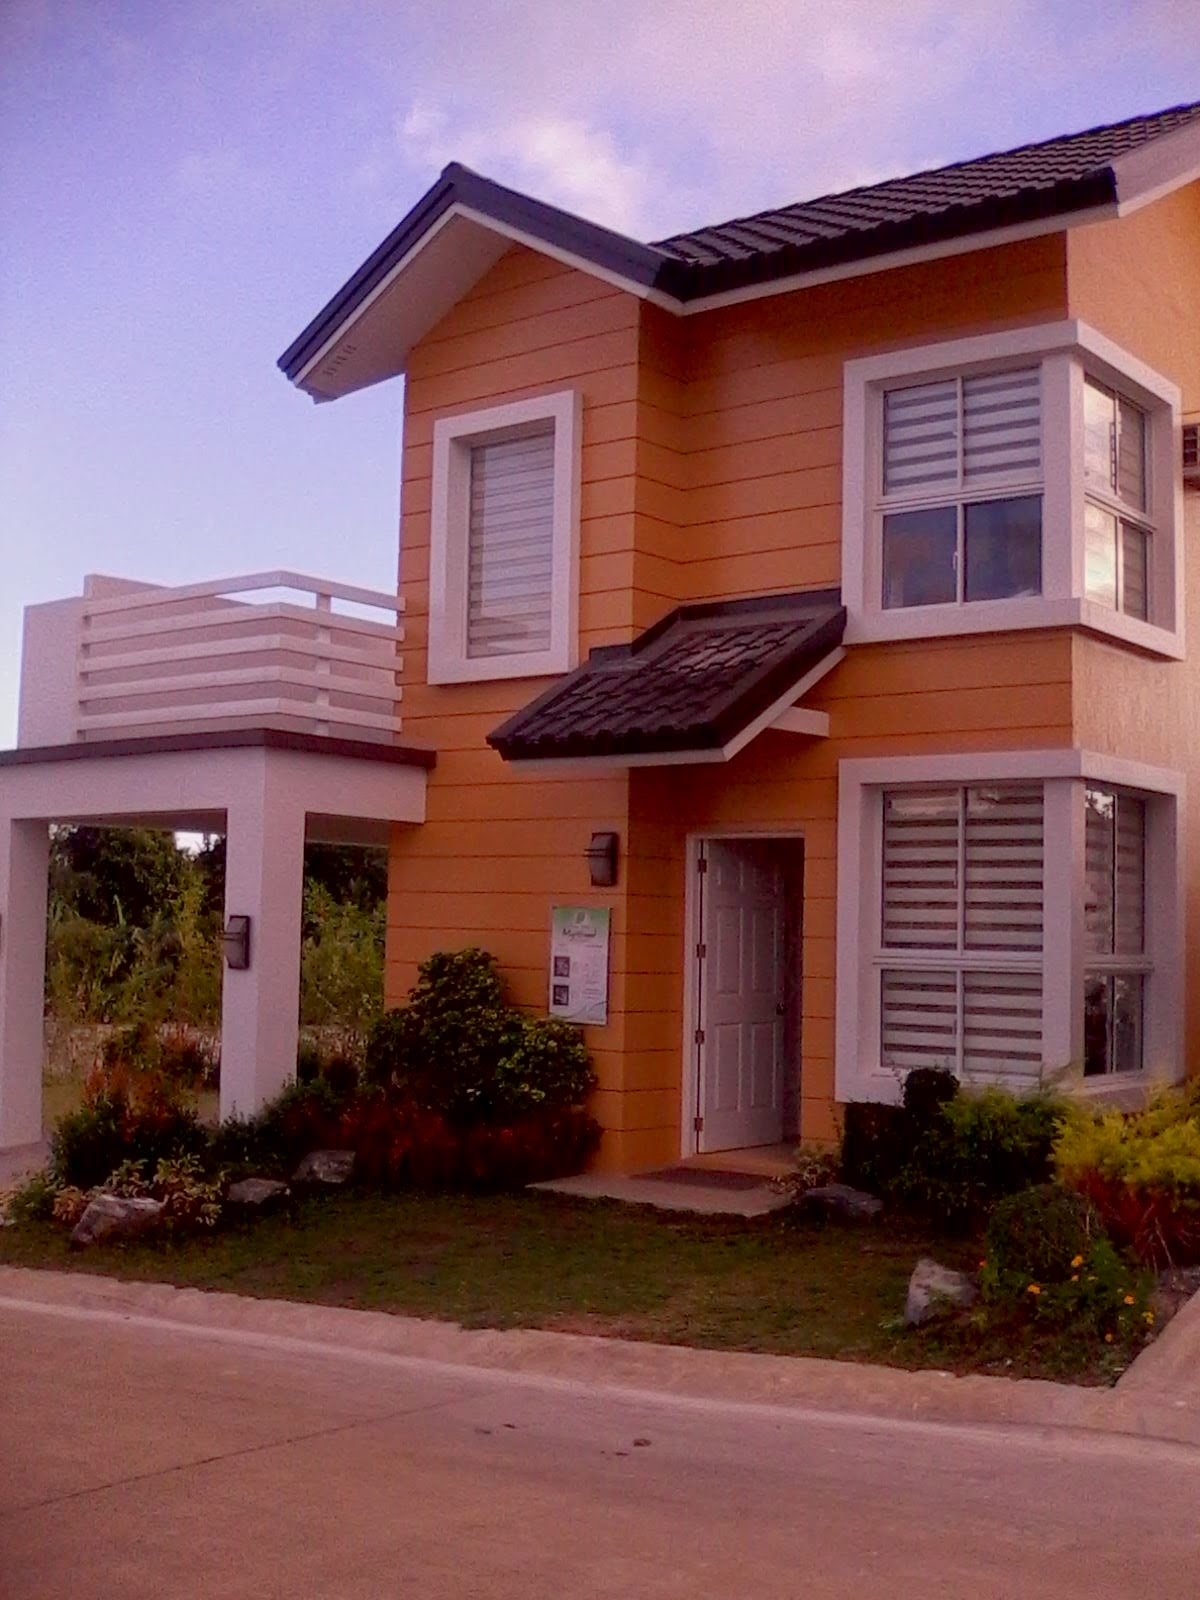 Properties For Sale in the Philippines: ANTIPOLO CITY LEASE TO OWN